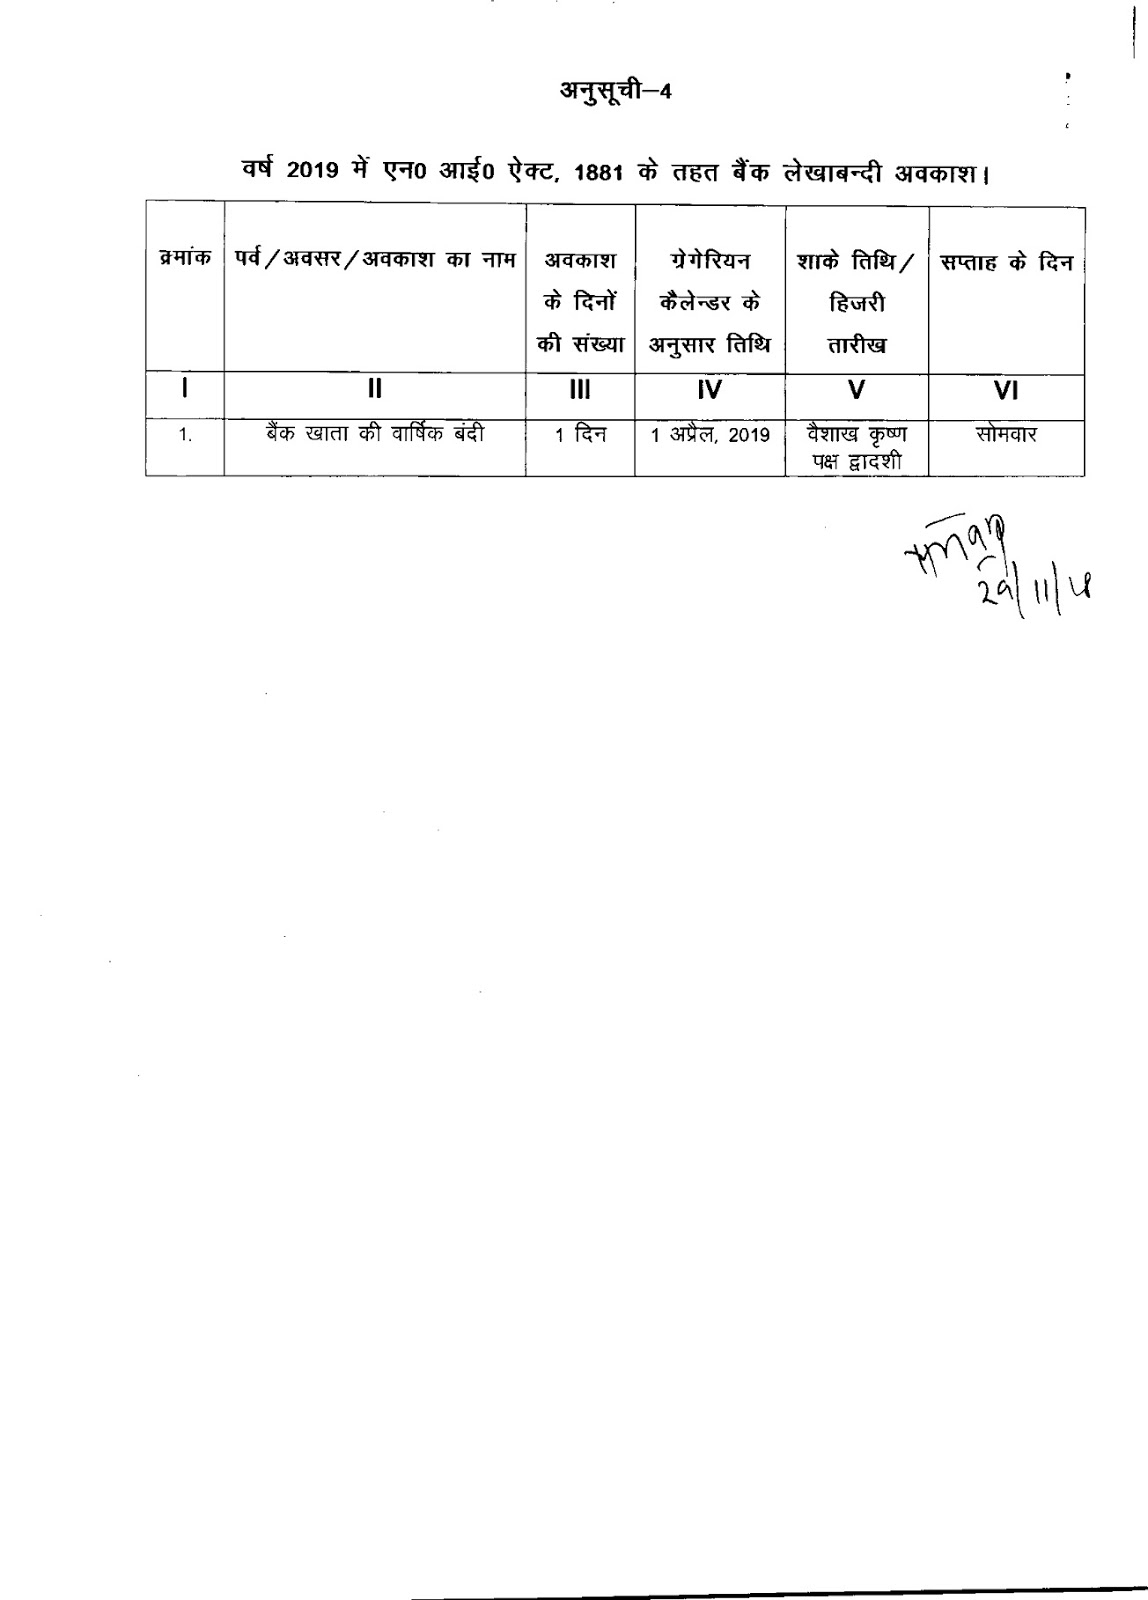 Bihar Government Calendar 2019 #educratsweb throughout Bihar Sarkar Callender